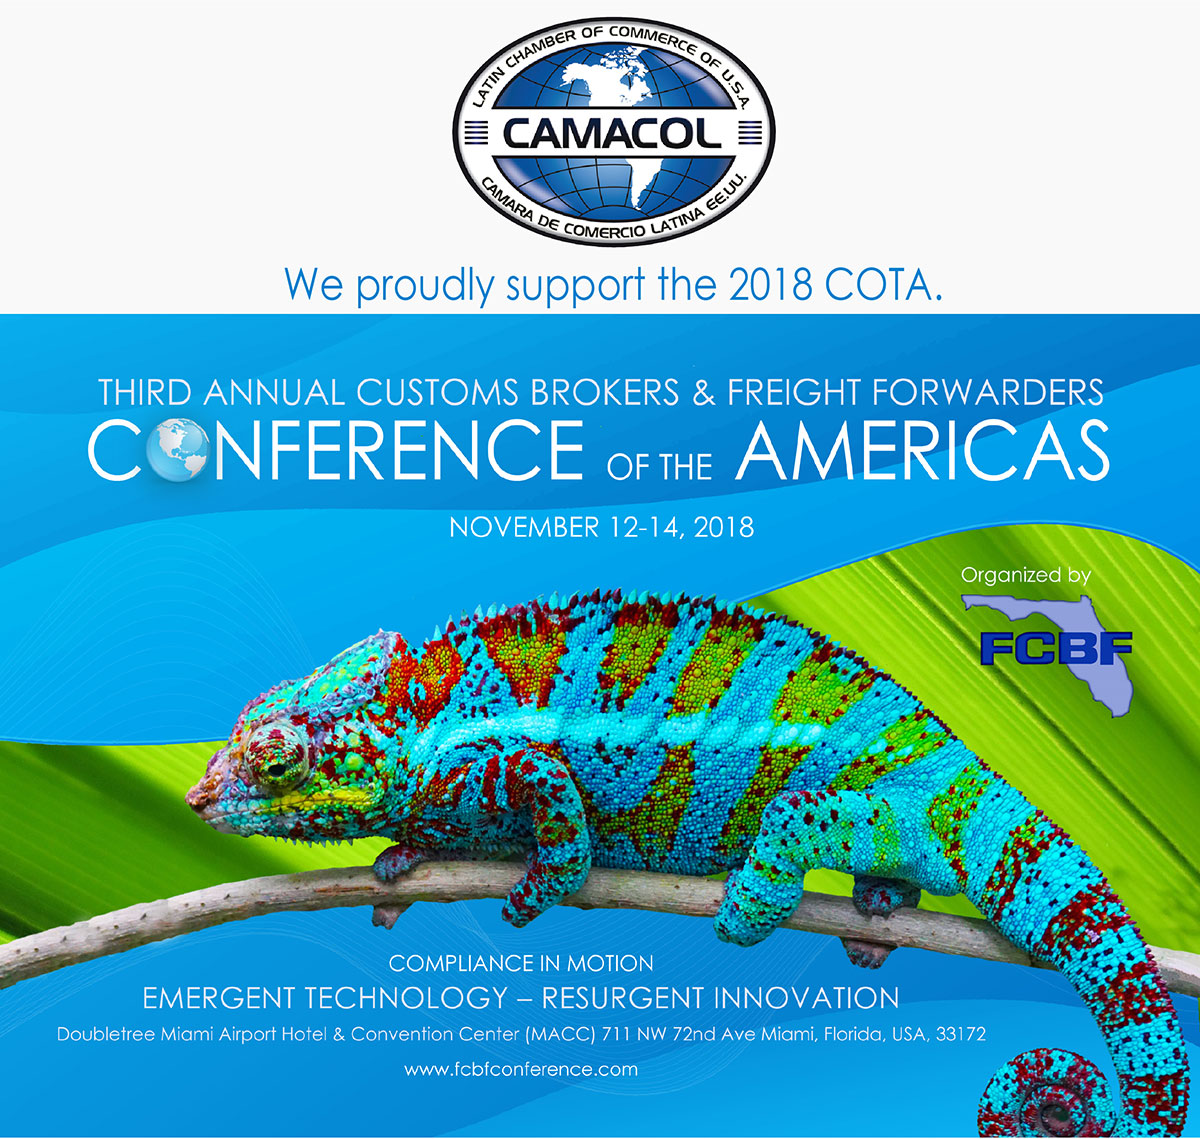 Conference of the Americas